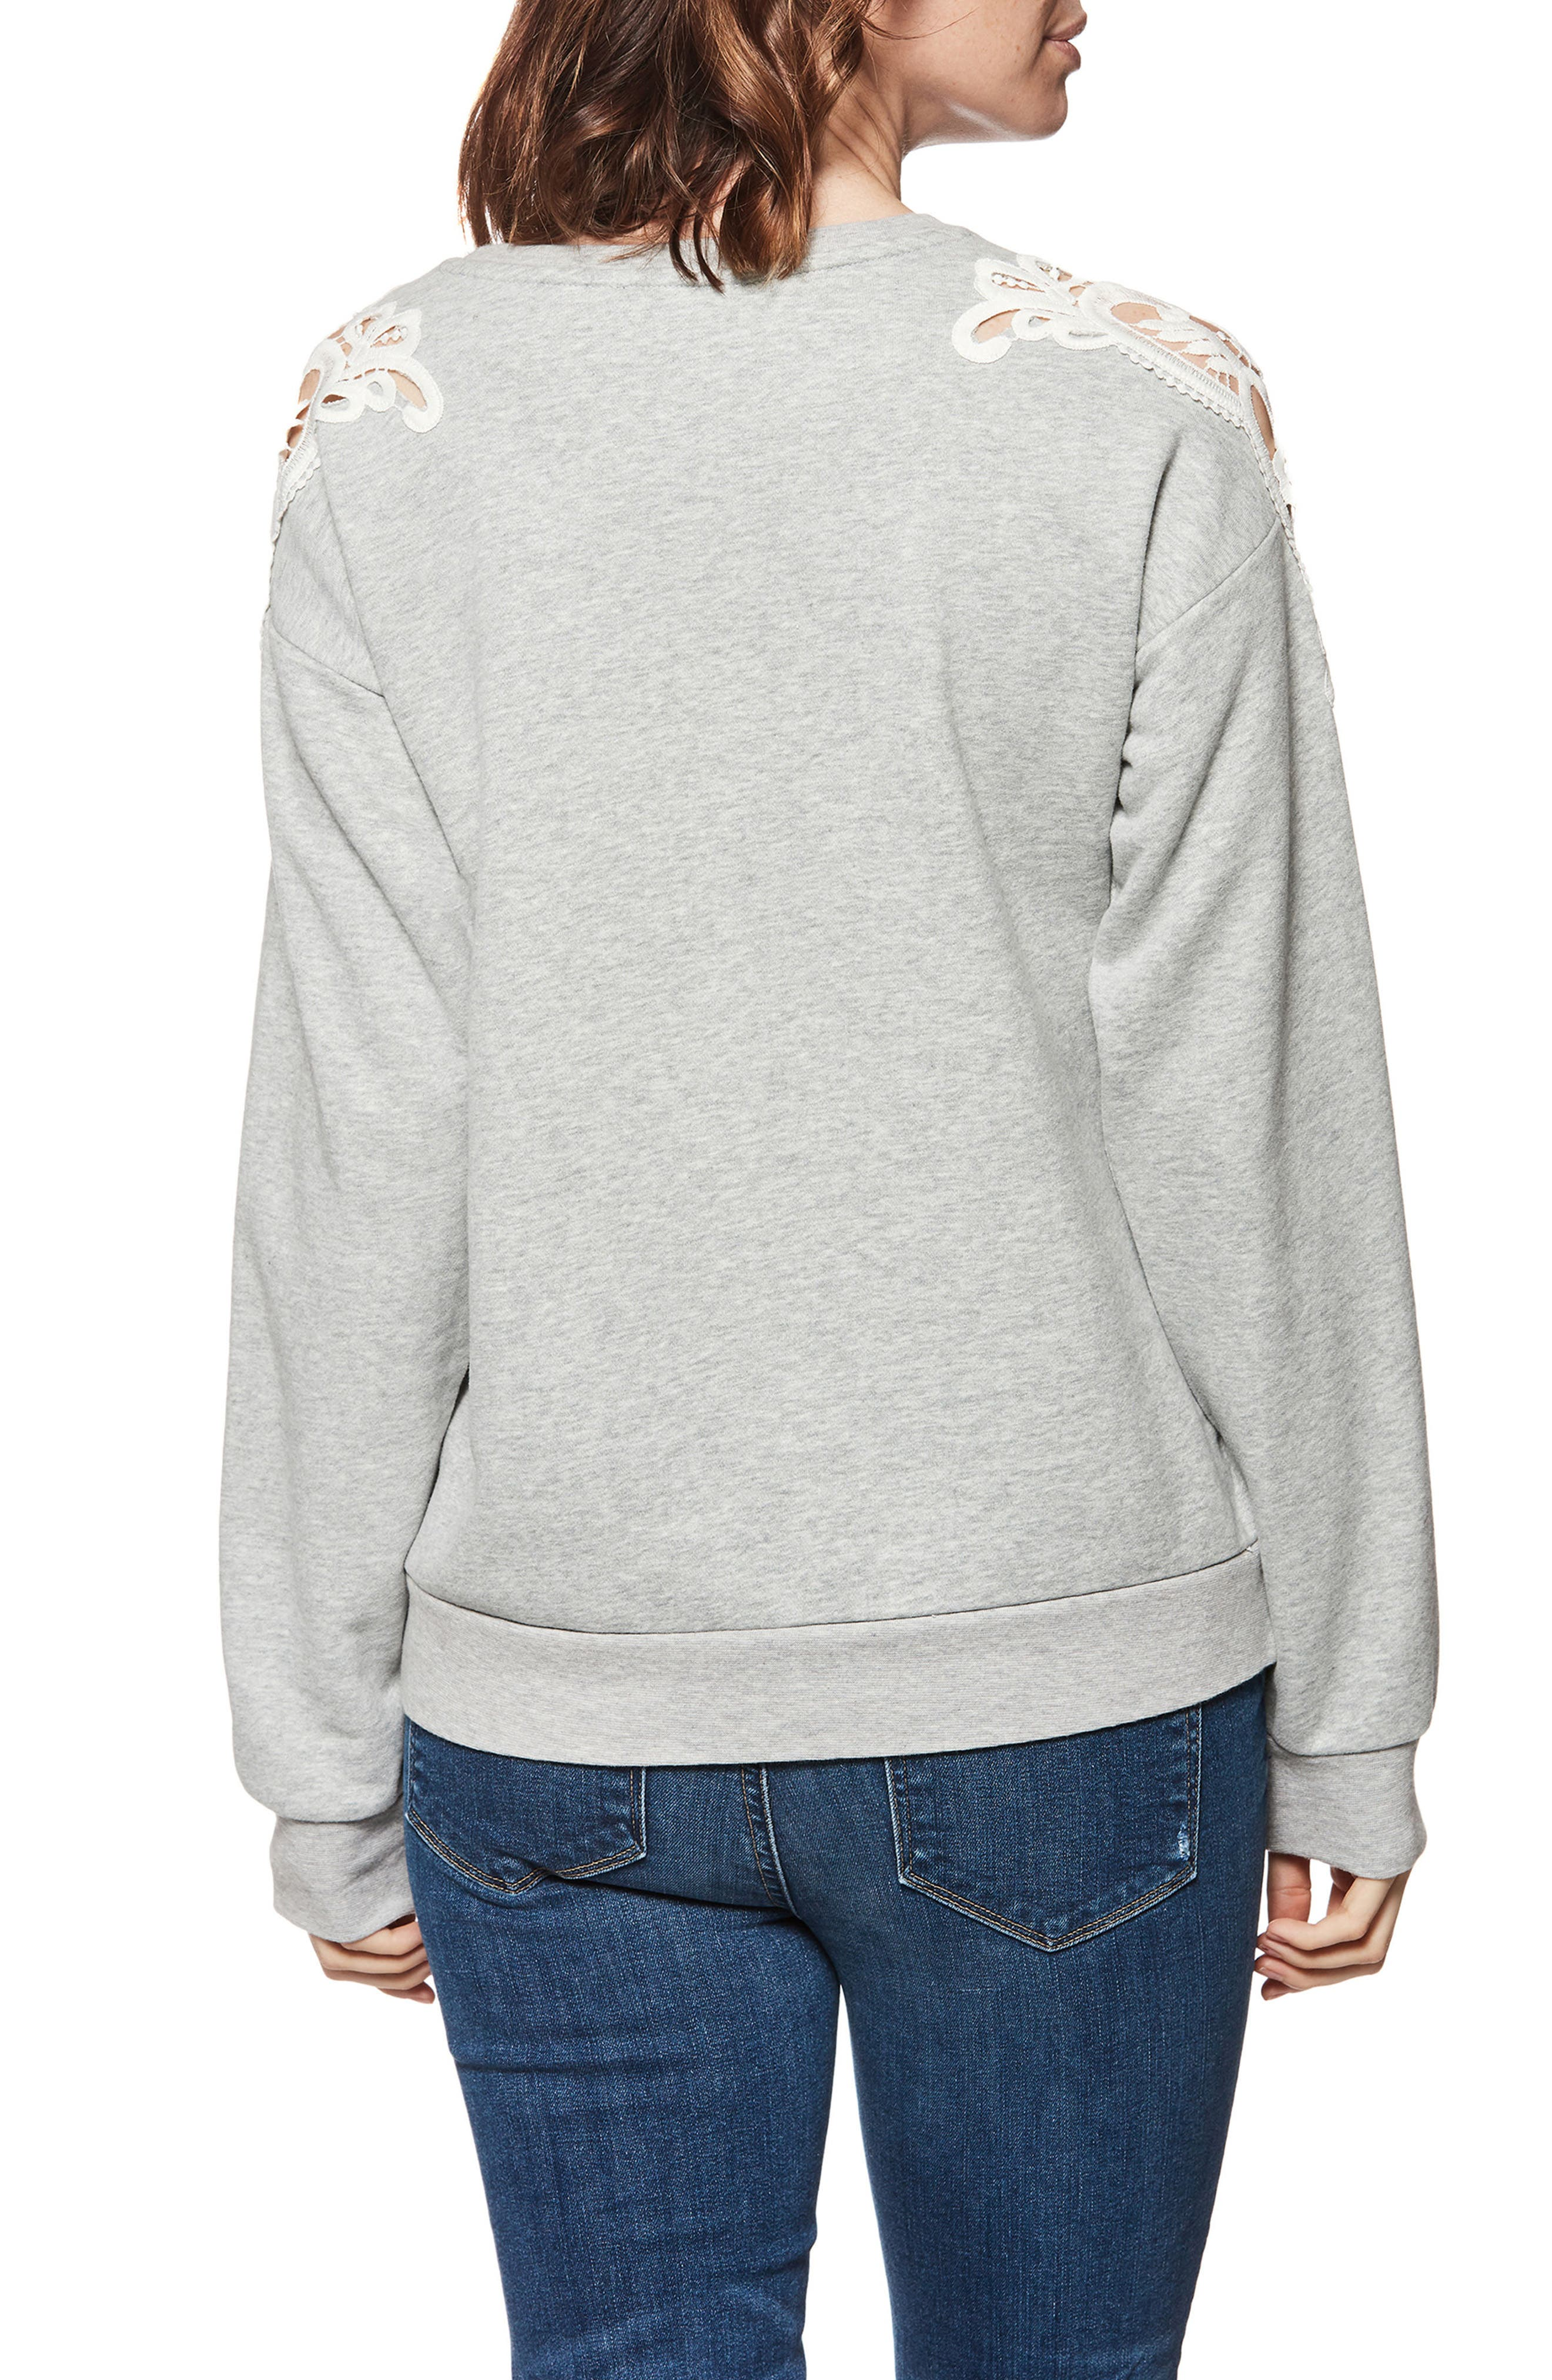 Eilise Crochet Detail Sweatshirt,                             Alternate thumbnail 2, color,                             061